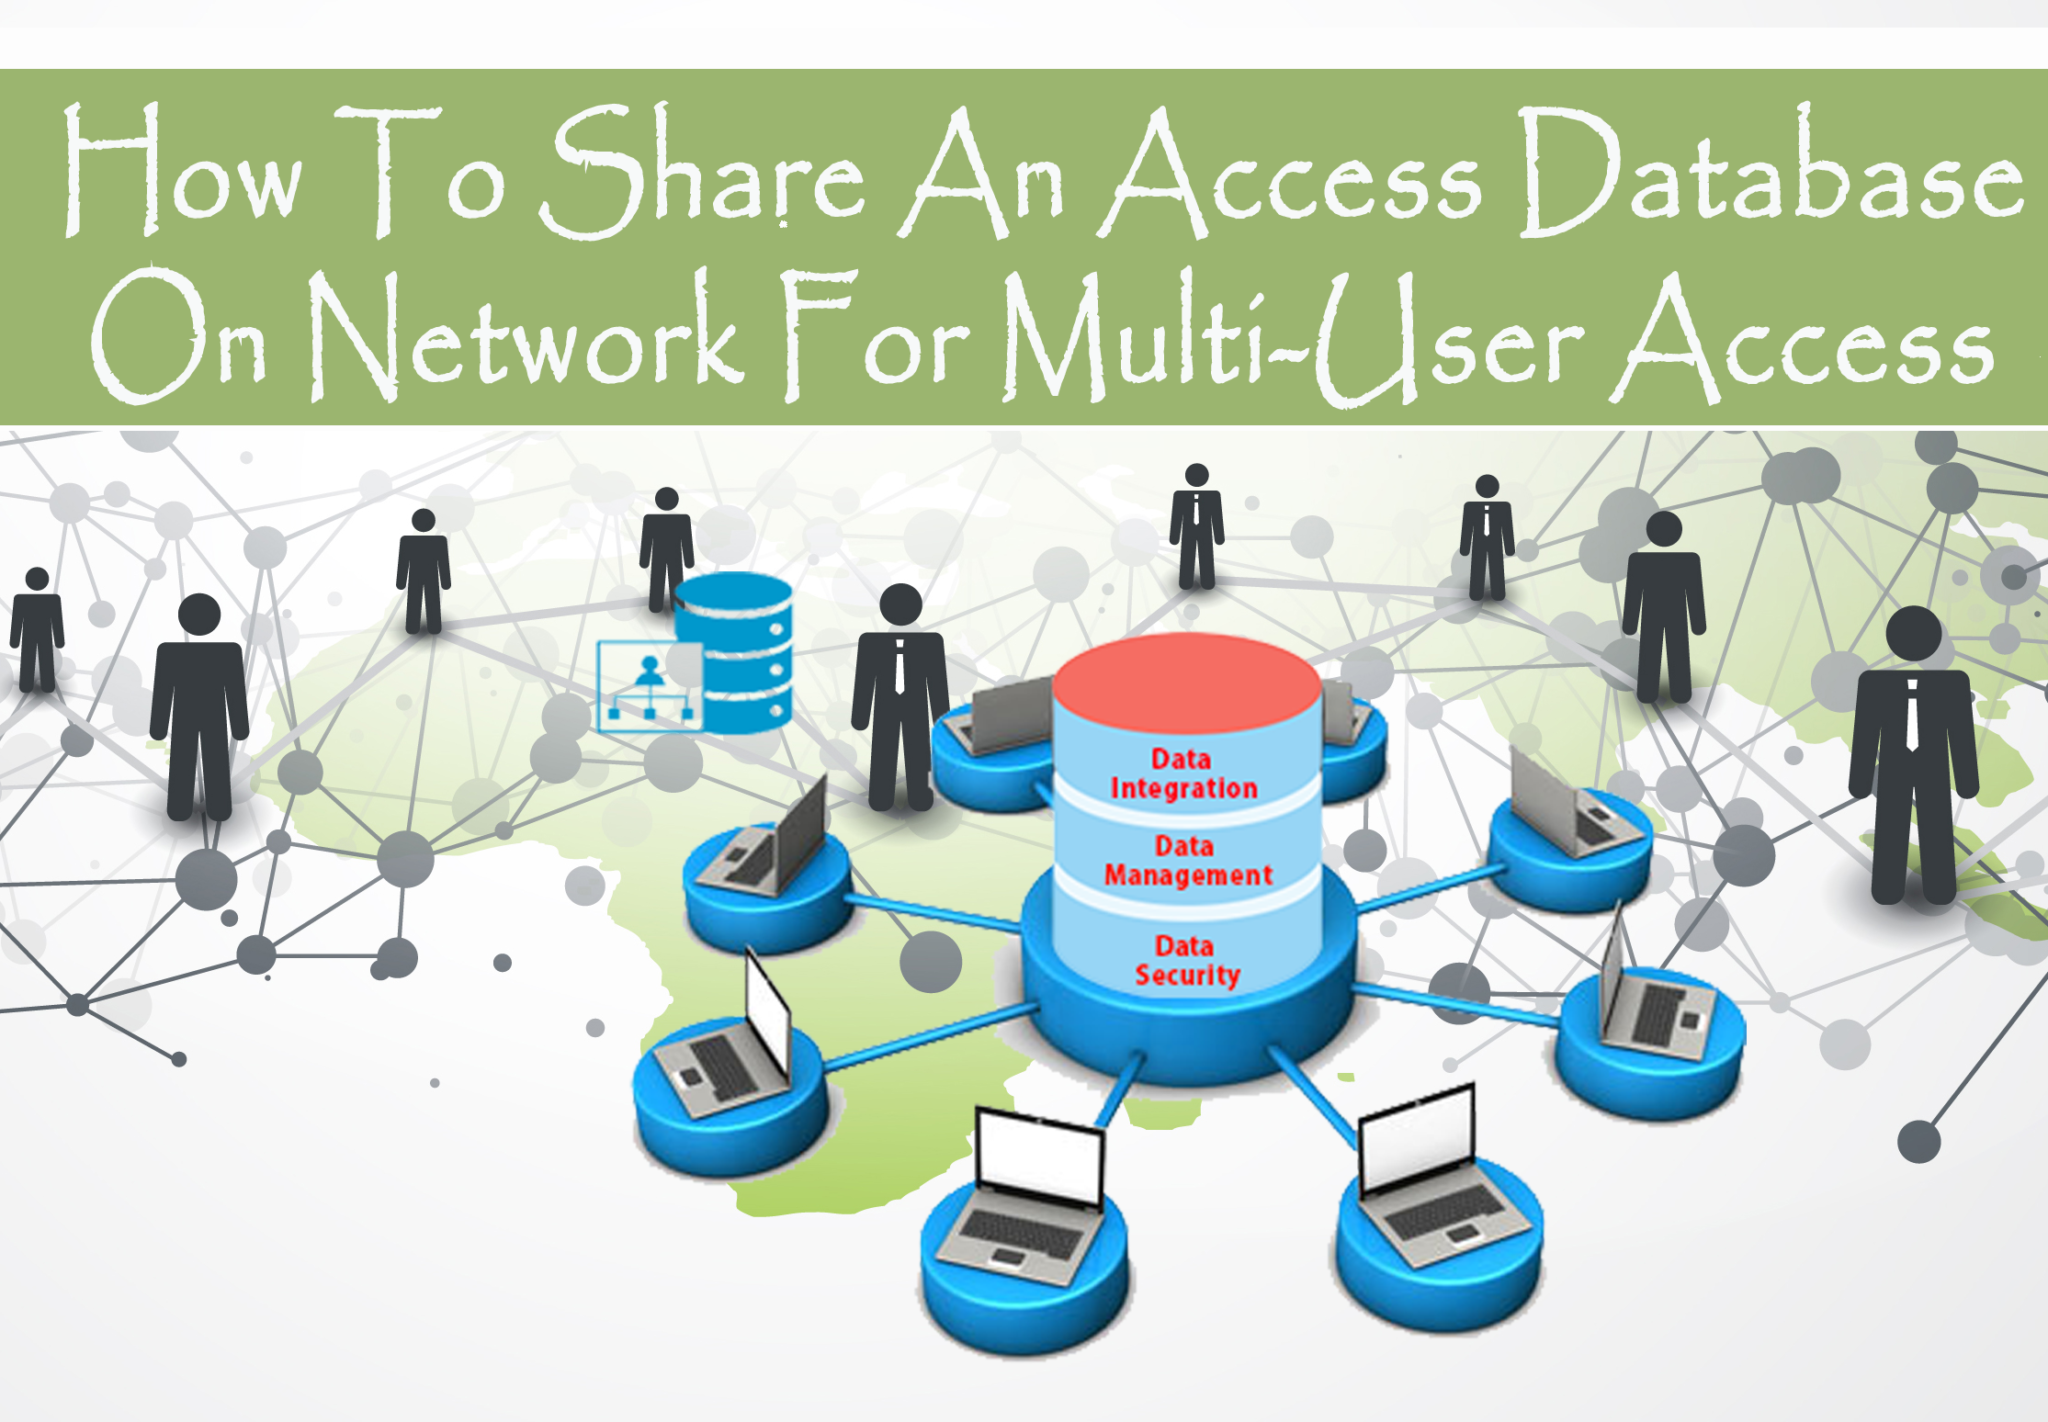 How To Share An Access Database On Network For Multi-User Access